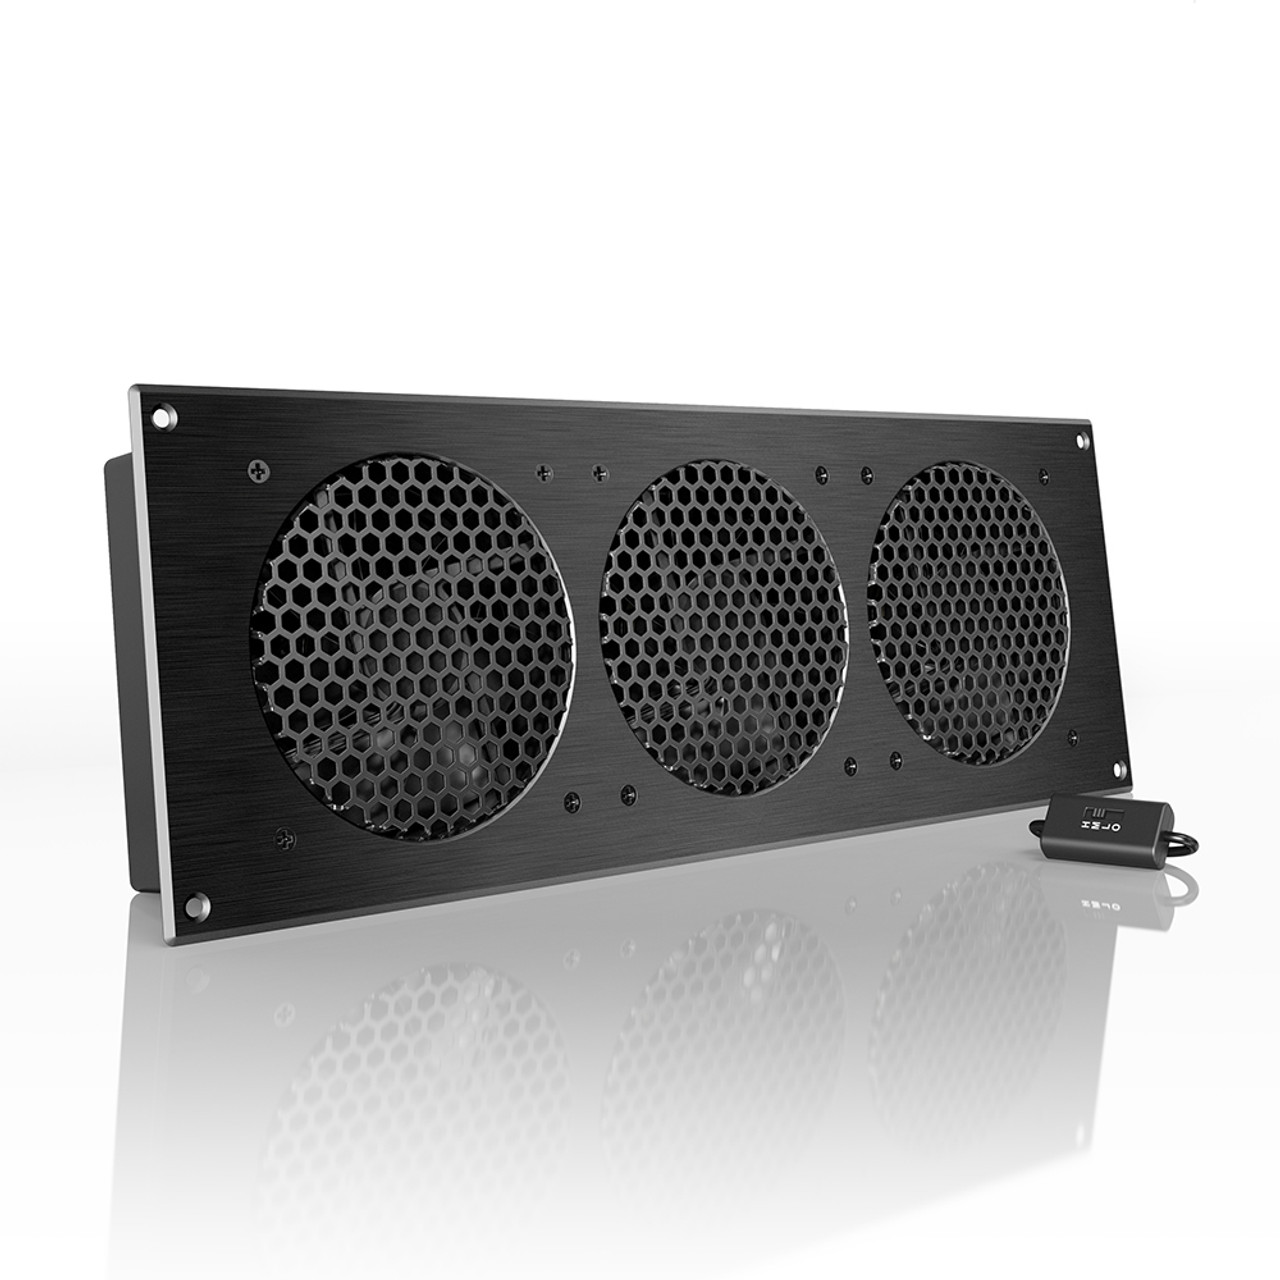 AC Infinity Airplate S9 Trio 120mm AV Cabinet Cooling Fan